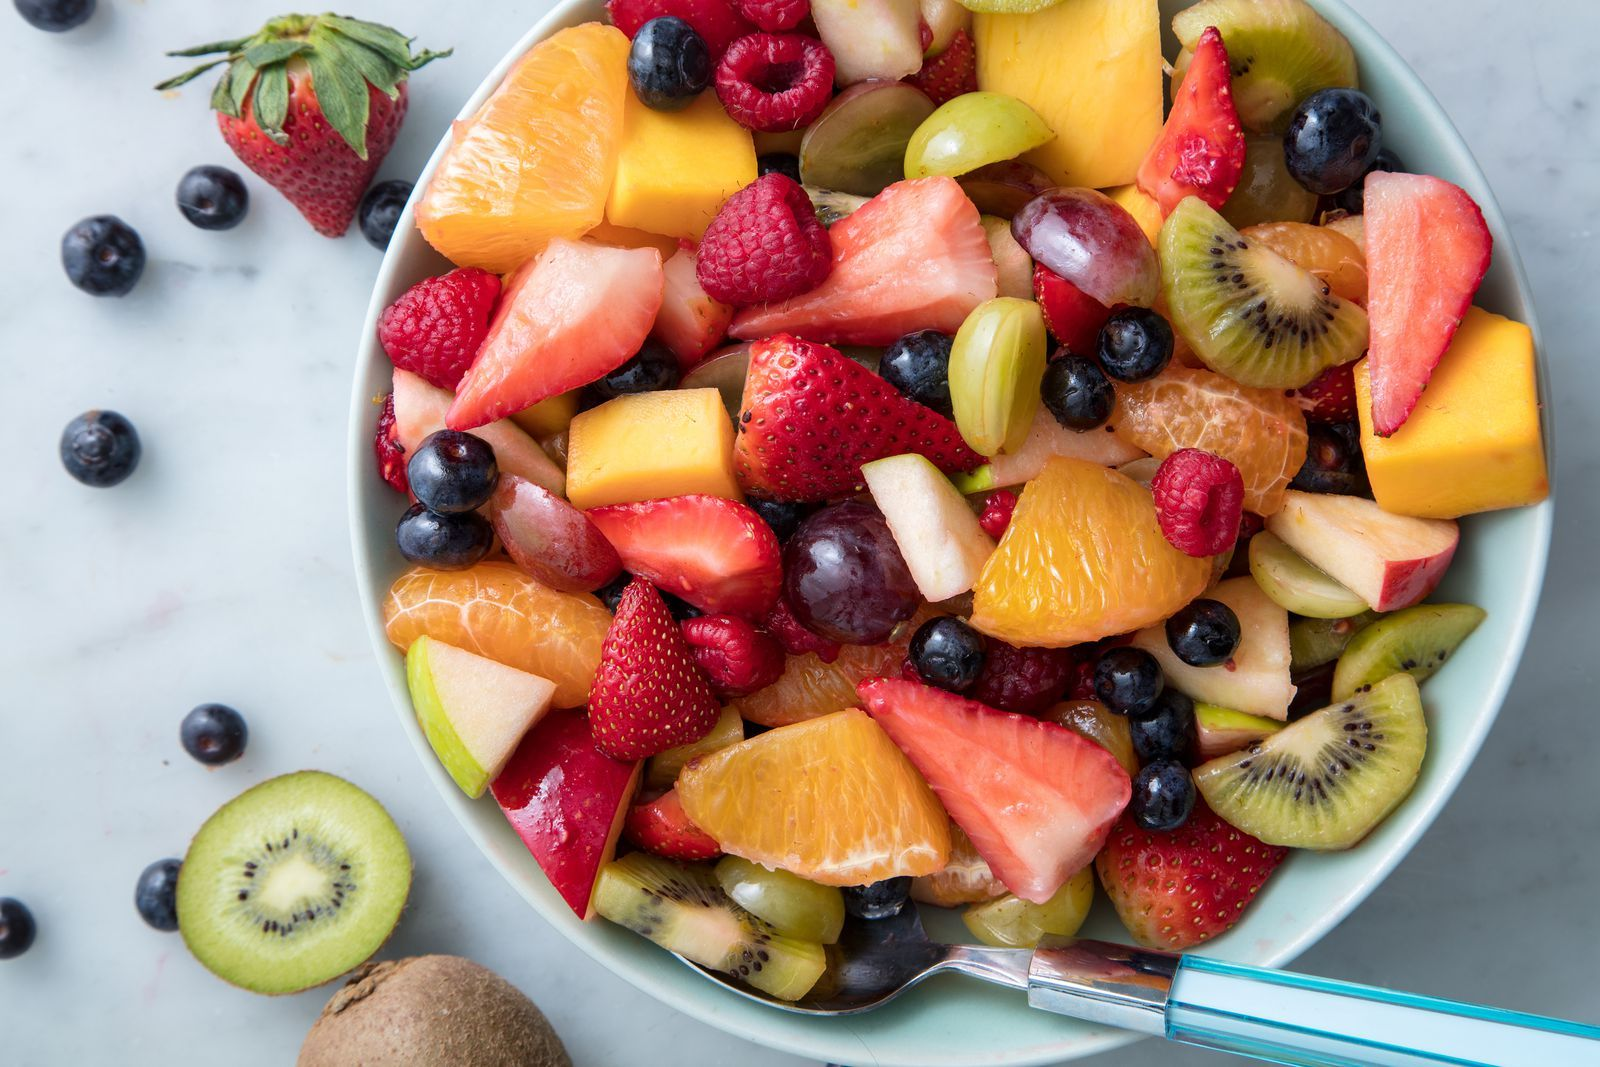 There S A Reason This Is The Best Fruit Salad Recipe Easy Fruit Salad Recipes Best Fruit Salad Fruit Salad Easy